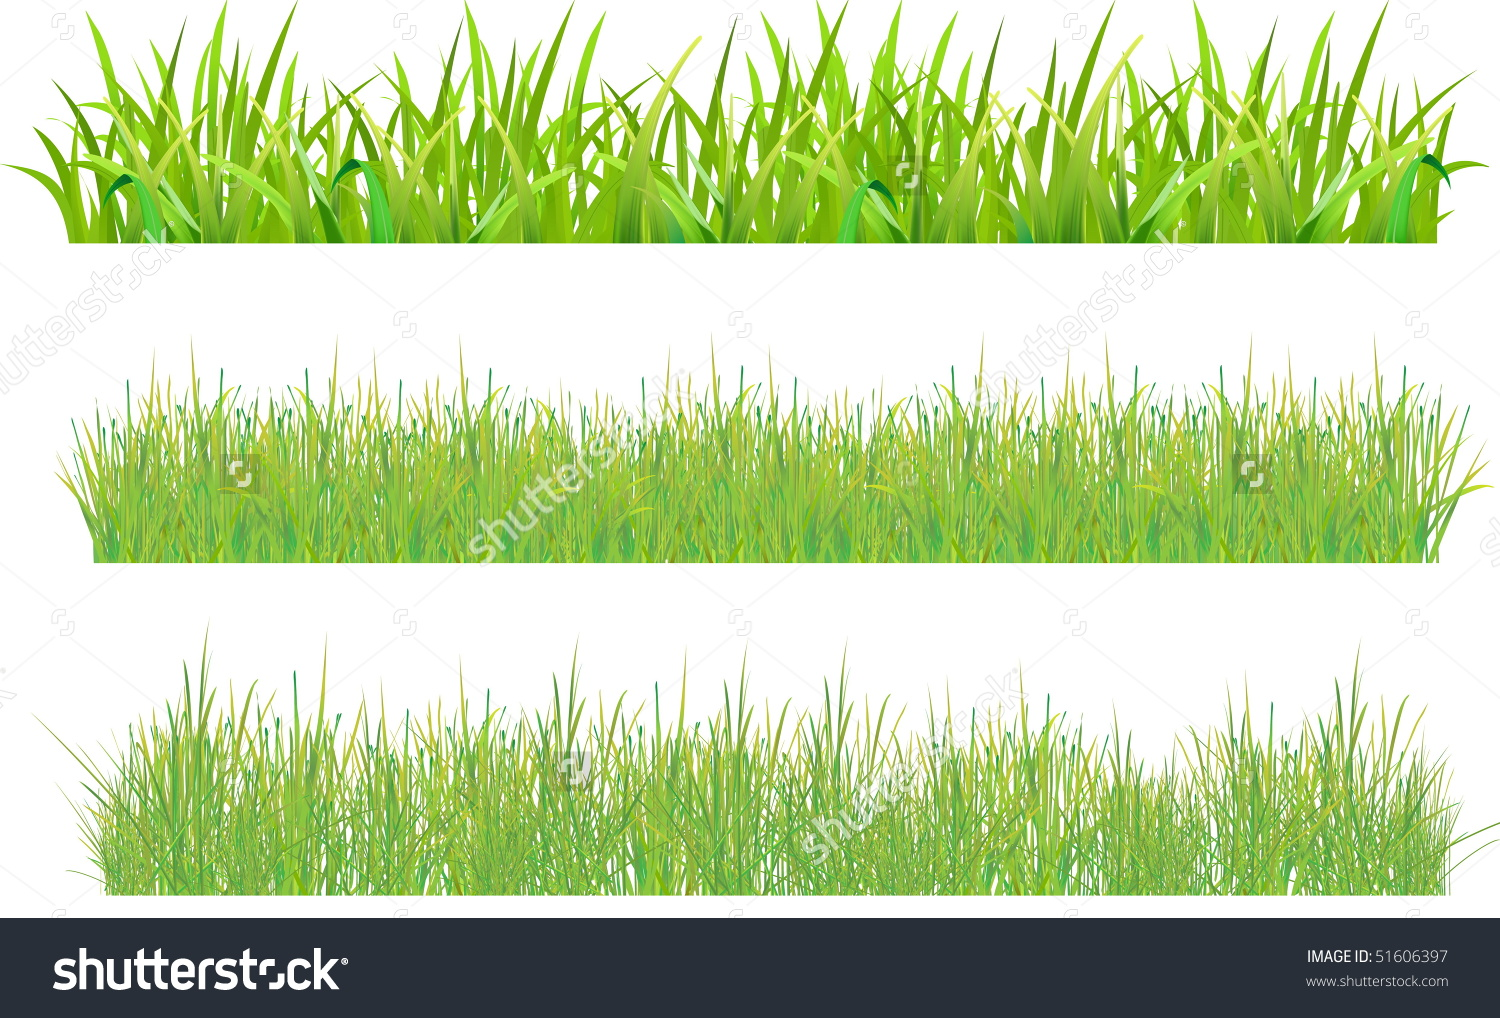 Thin grass clipart clip library Thick blades of grass clipart - ClipartFest clip library